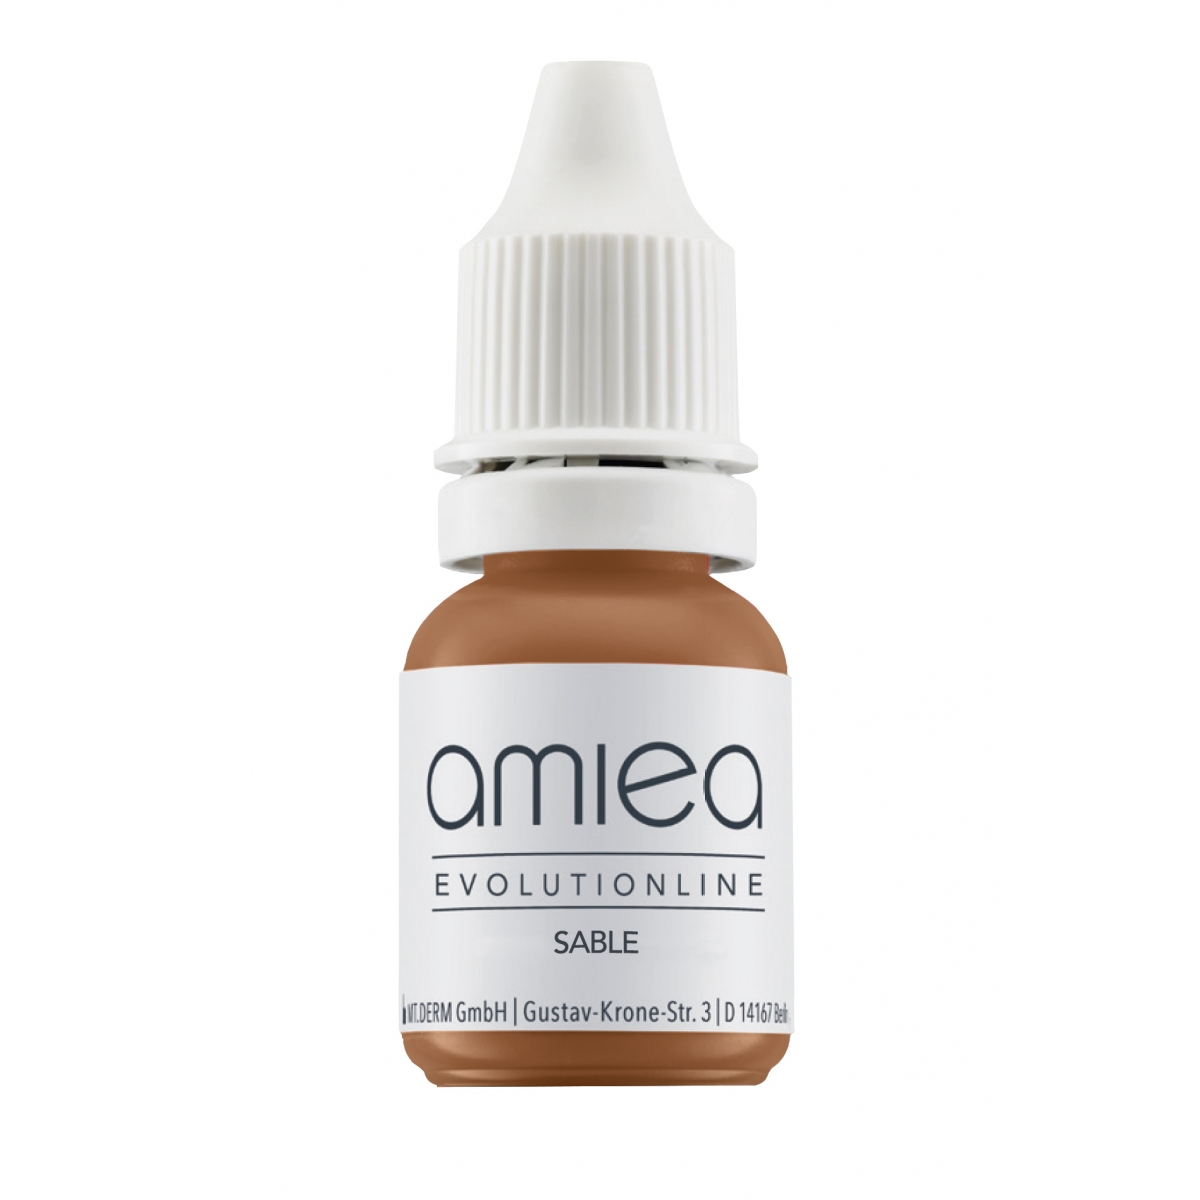 PIGMENTS AMIEA EVOLUTIONLINE SABLE, 5 ml